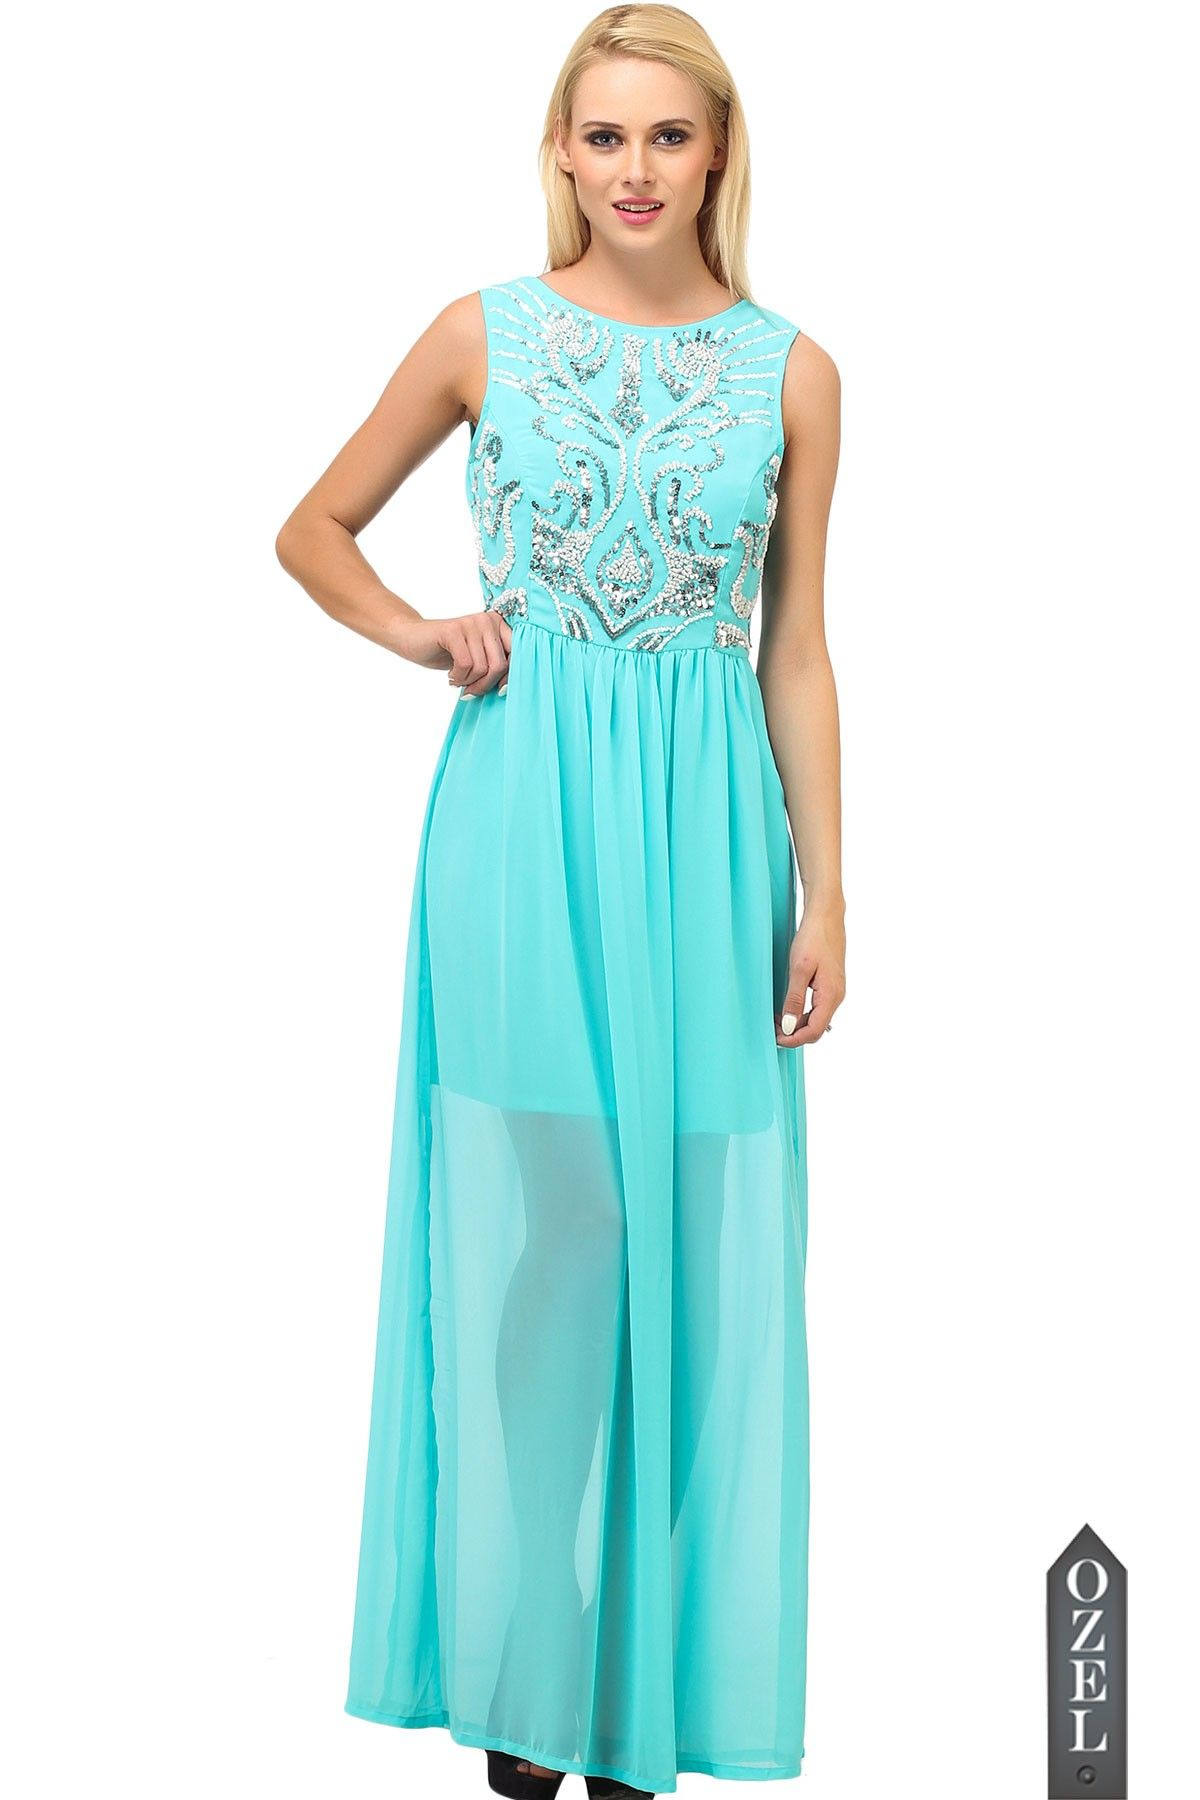 Sea Green Sequence Maxi Dress by Ozel Studio | OZEL Studio Couture ...